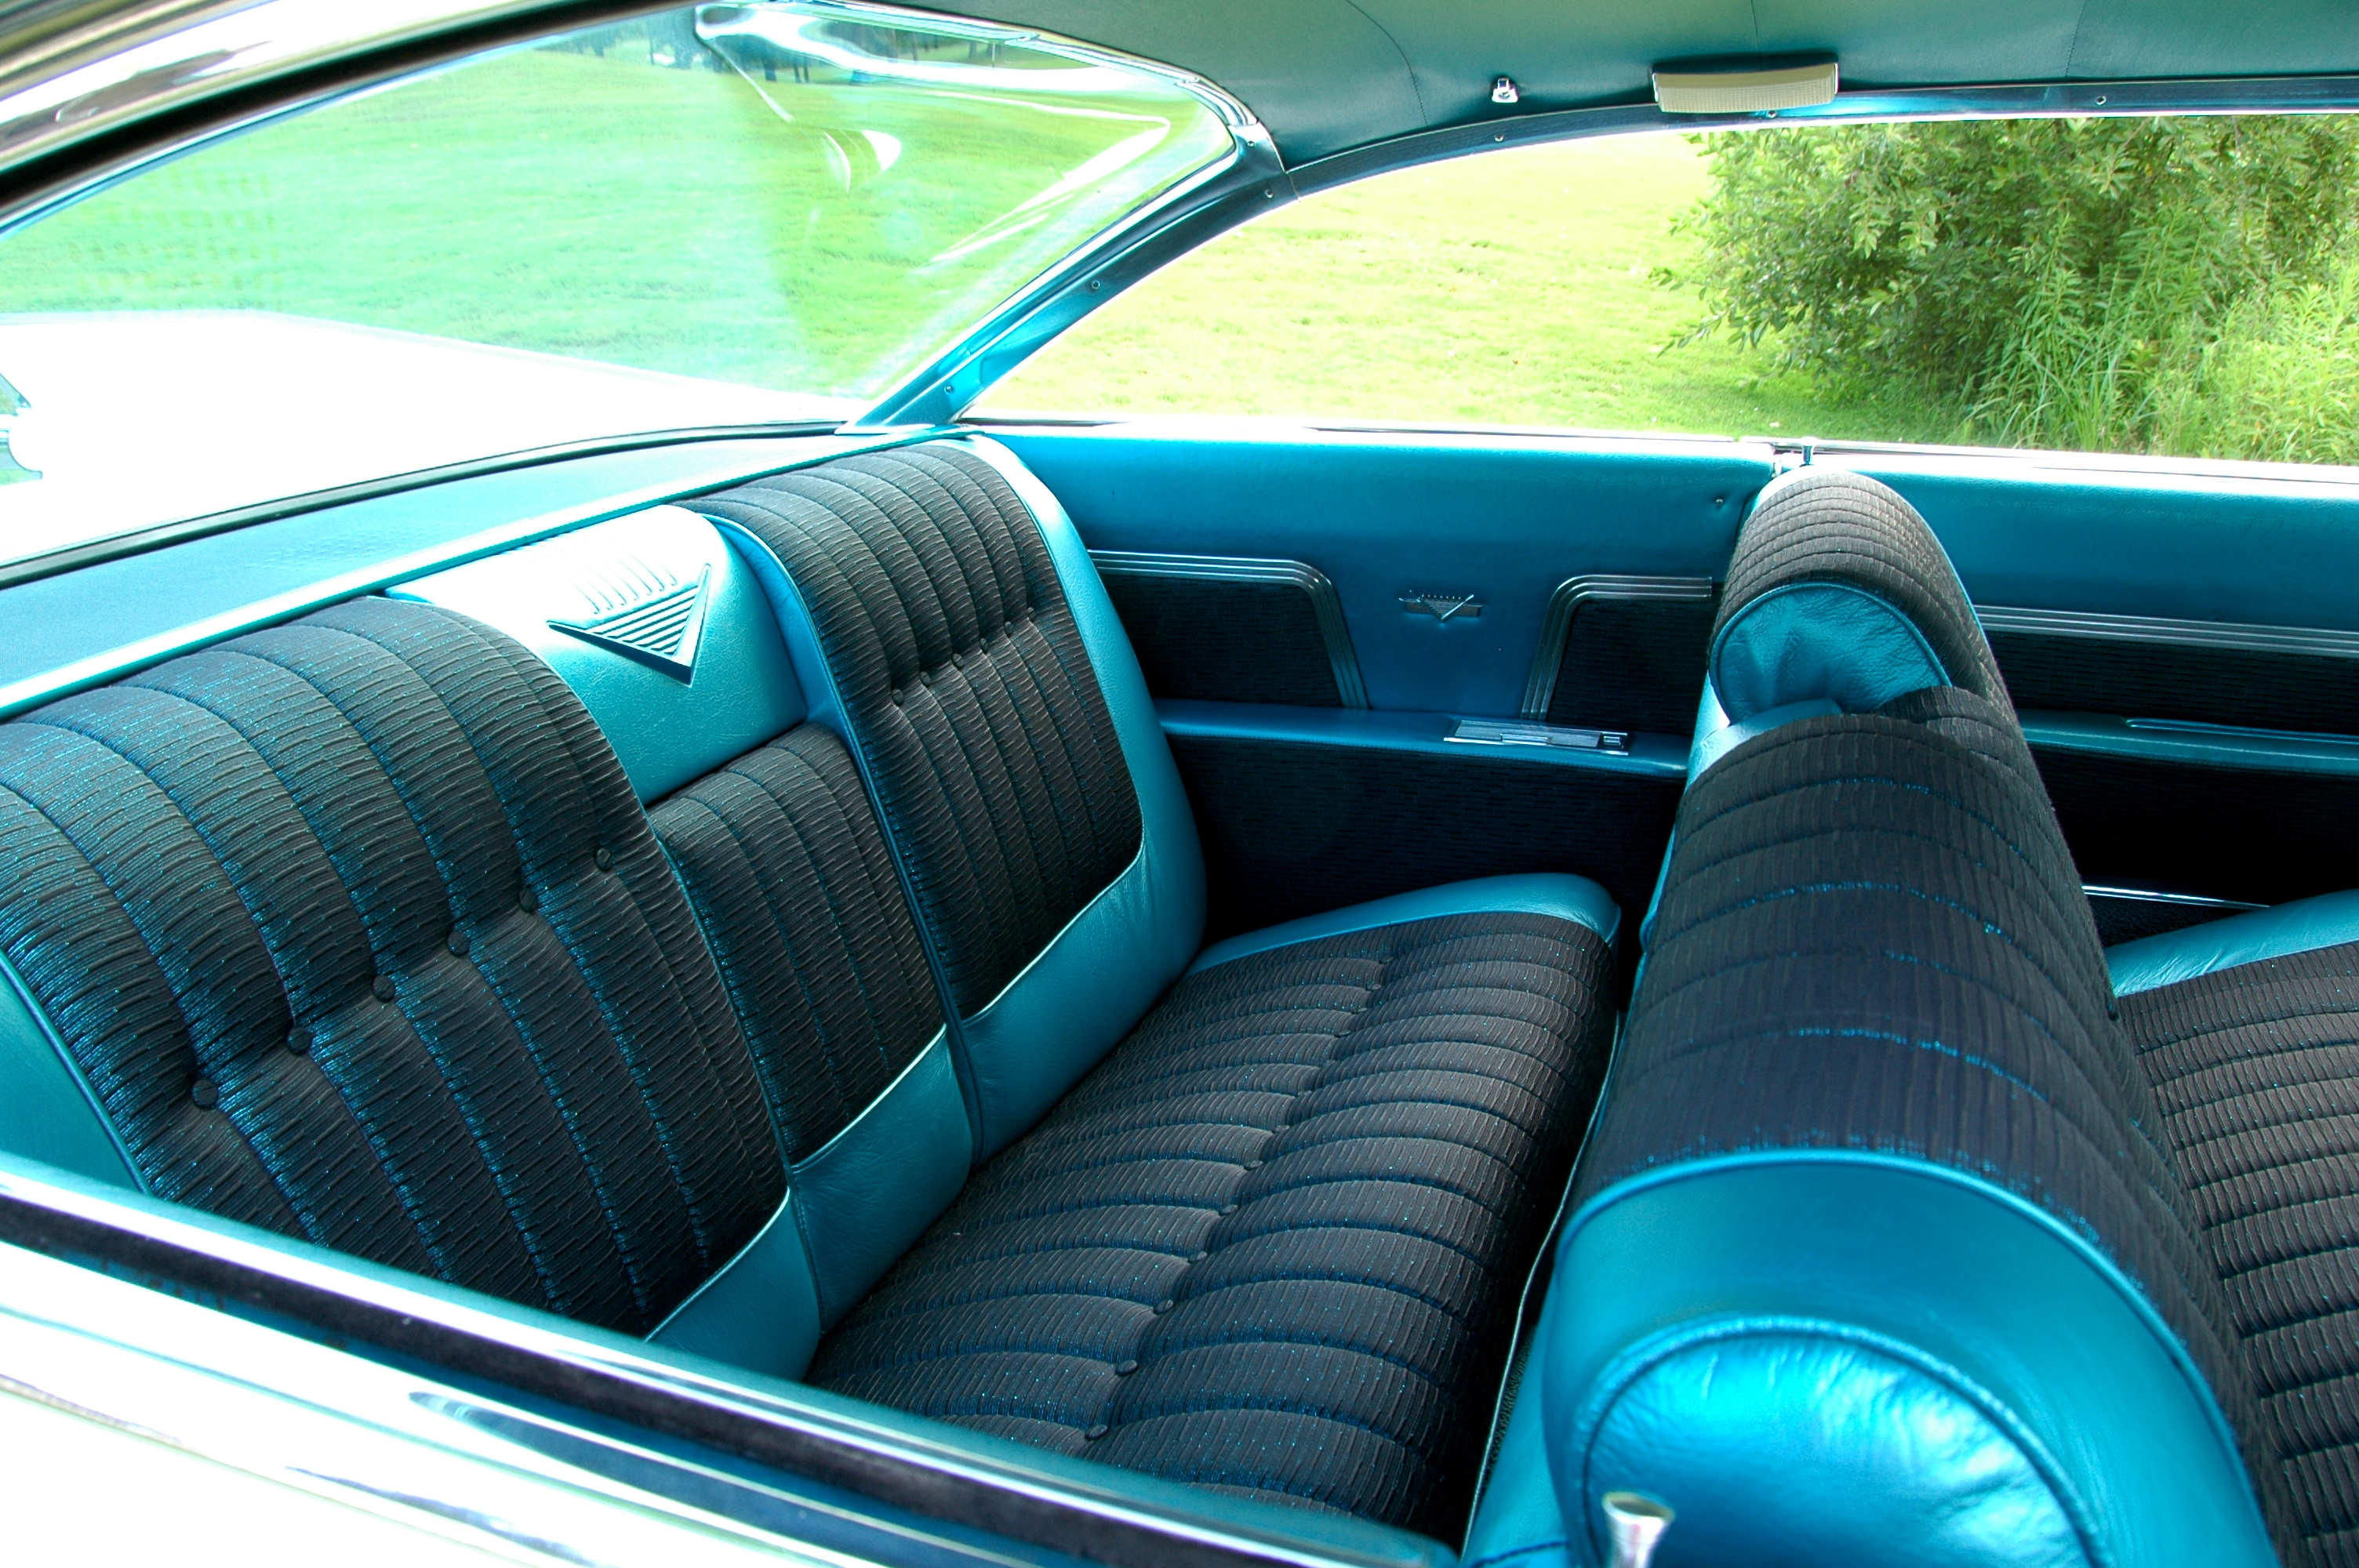 1957 Cars Restored Or Wallpapers Cadillac Interior Restoration Amp Upholstery 187 Cpr For Your Car